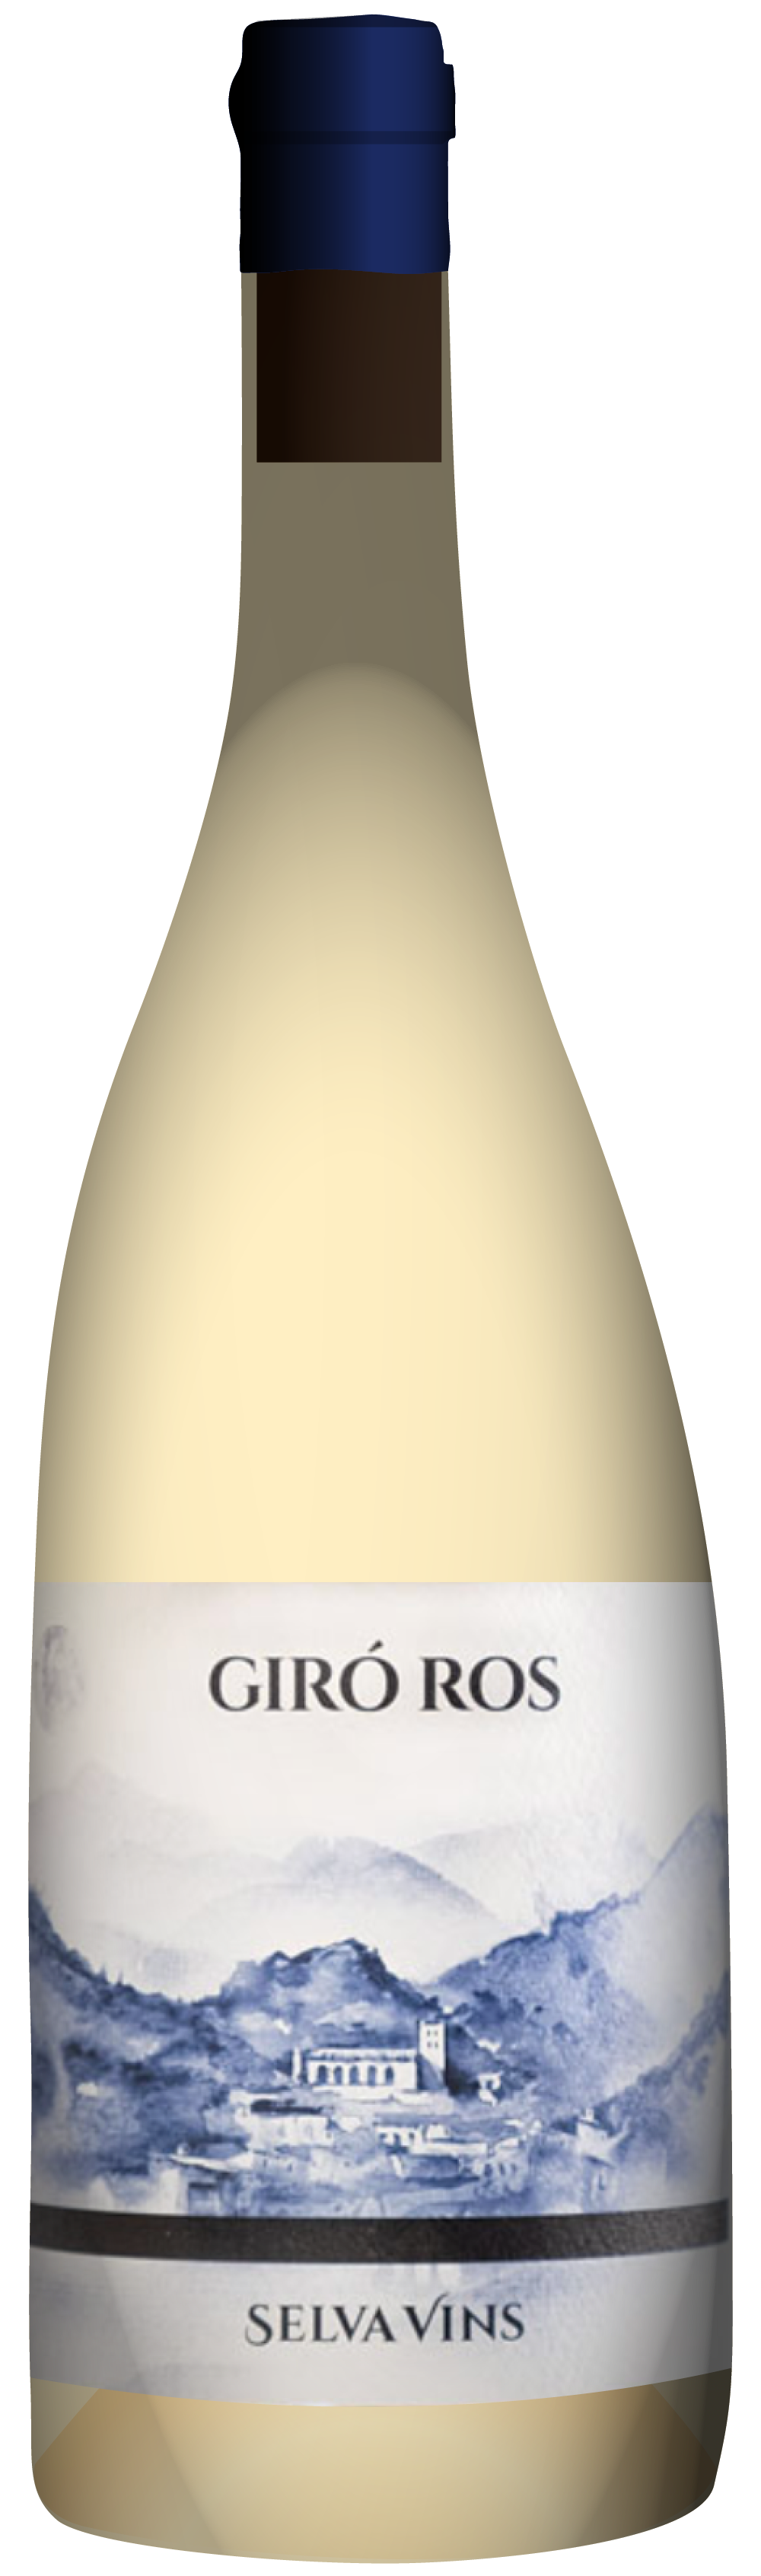 the natural wine company club october 2020 spain selva vins giro ros